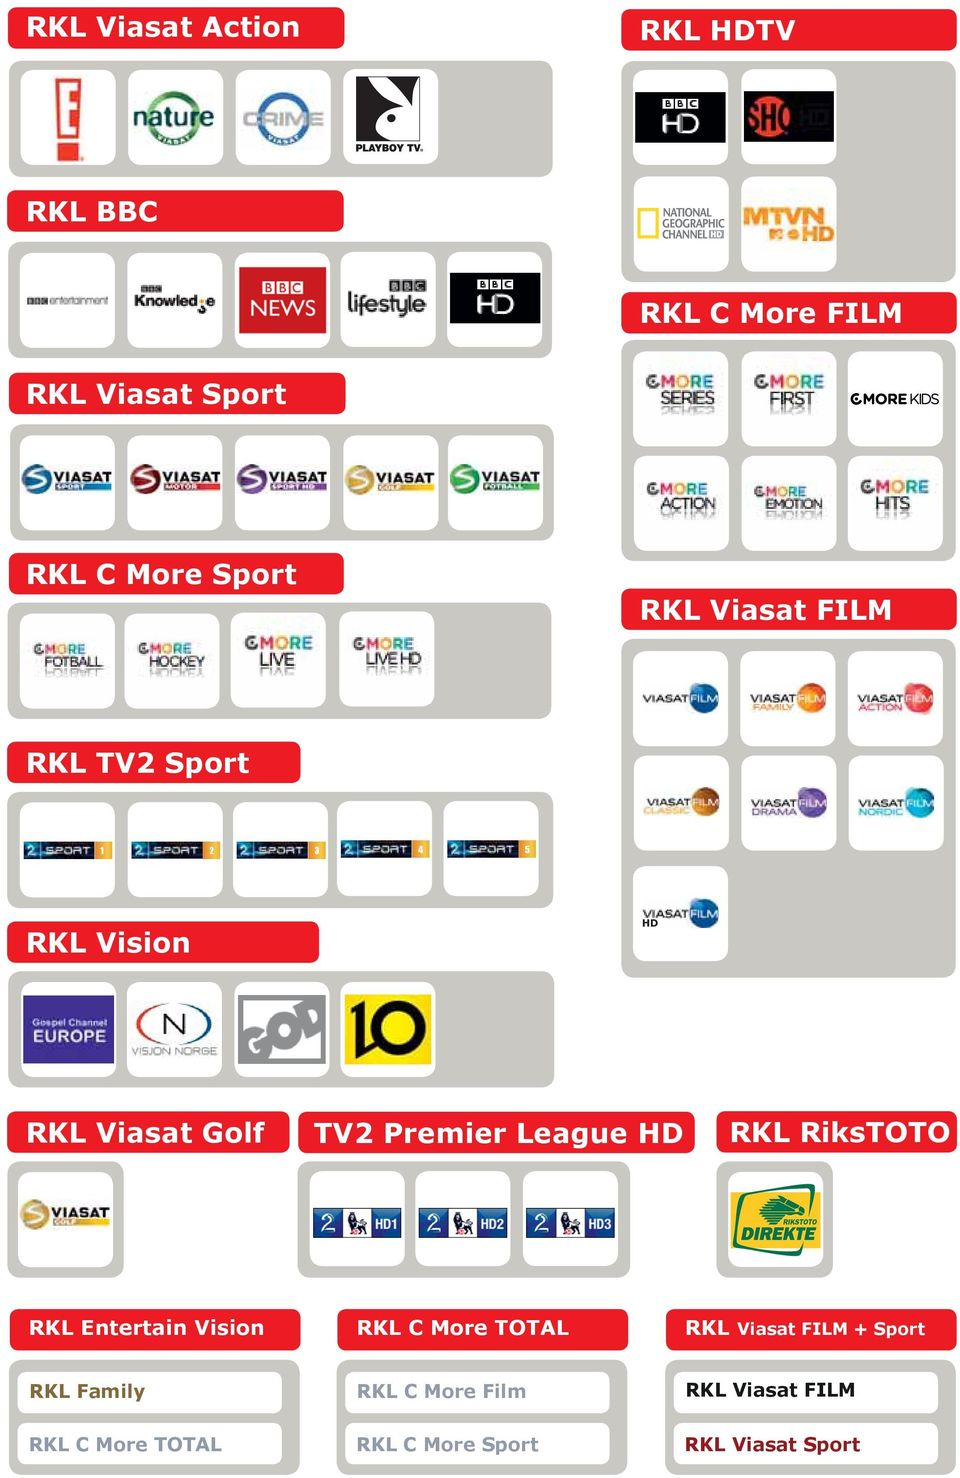 League HD RKL RiksTOTO RKL Entertain Vision RKL C More TOTAL RKL Viasat FILM + Sport